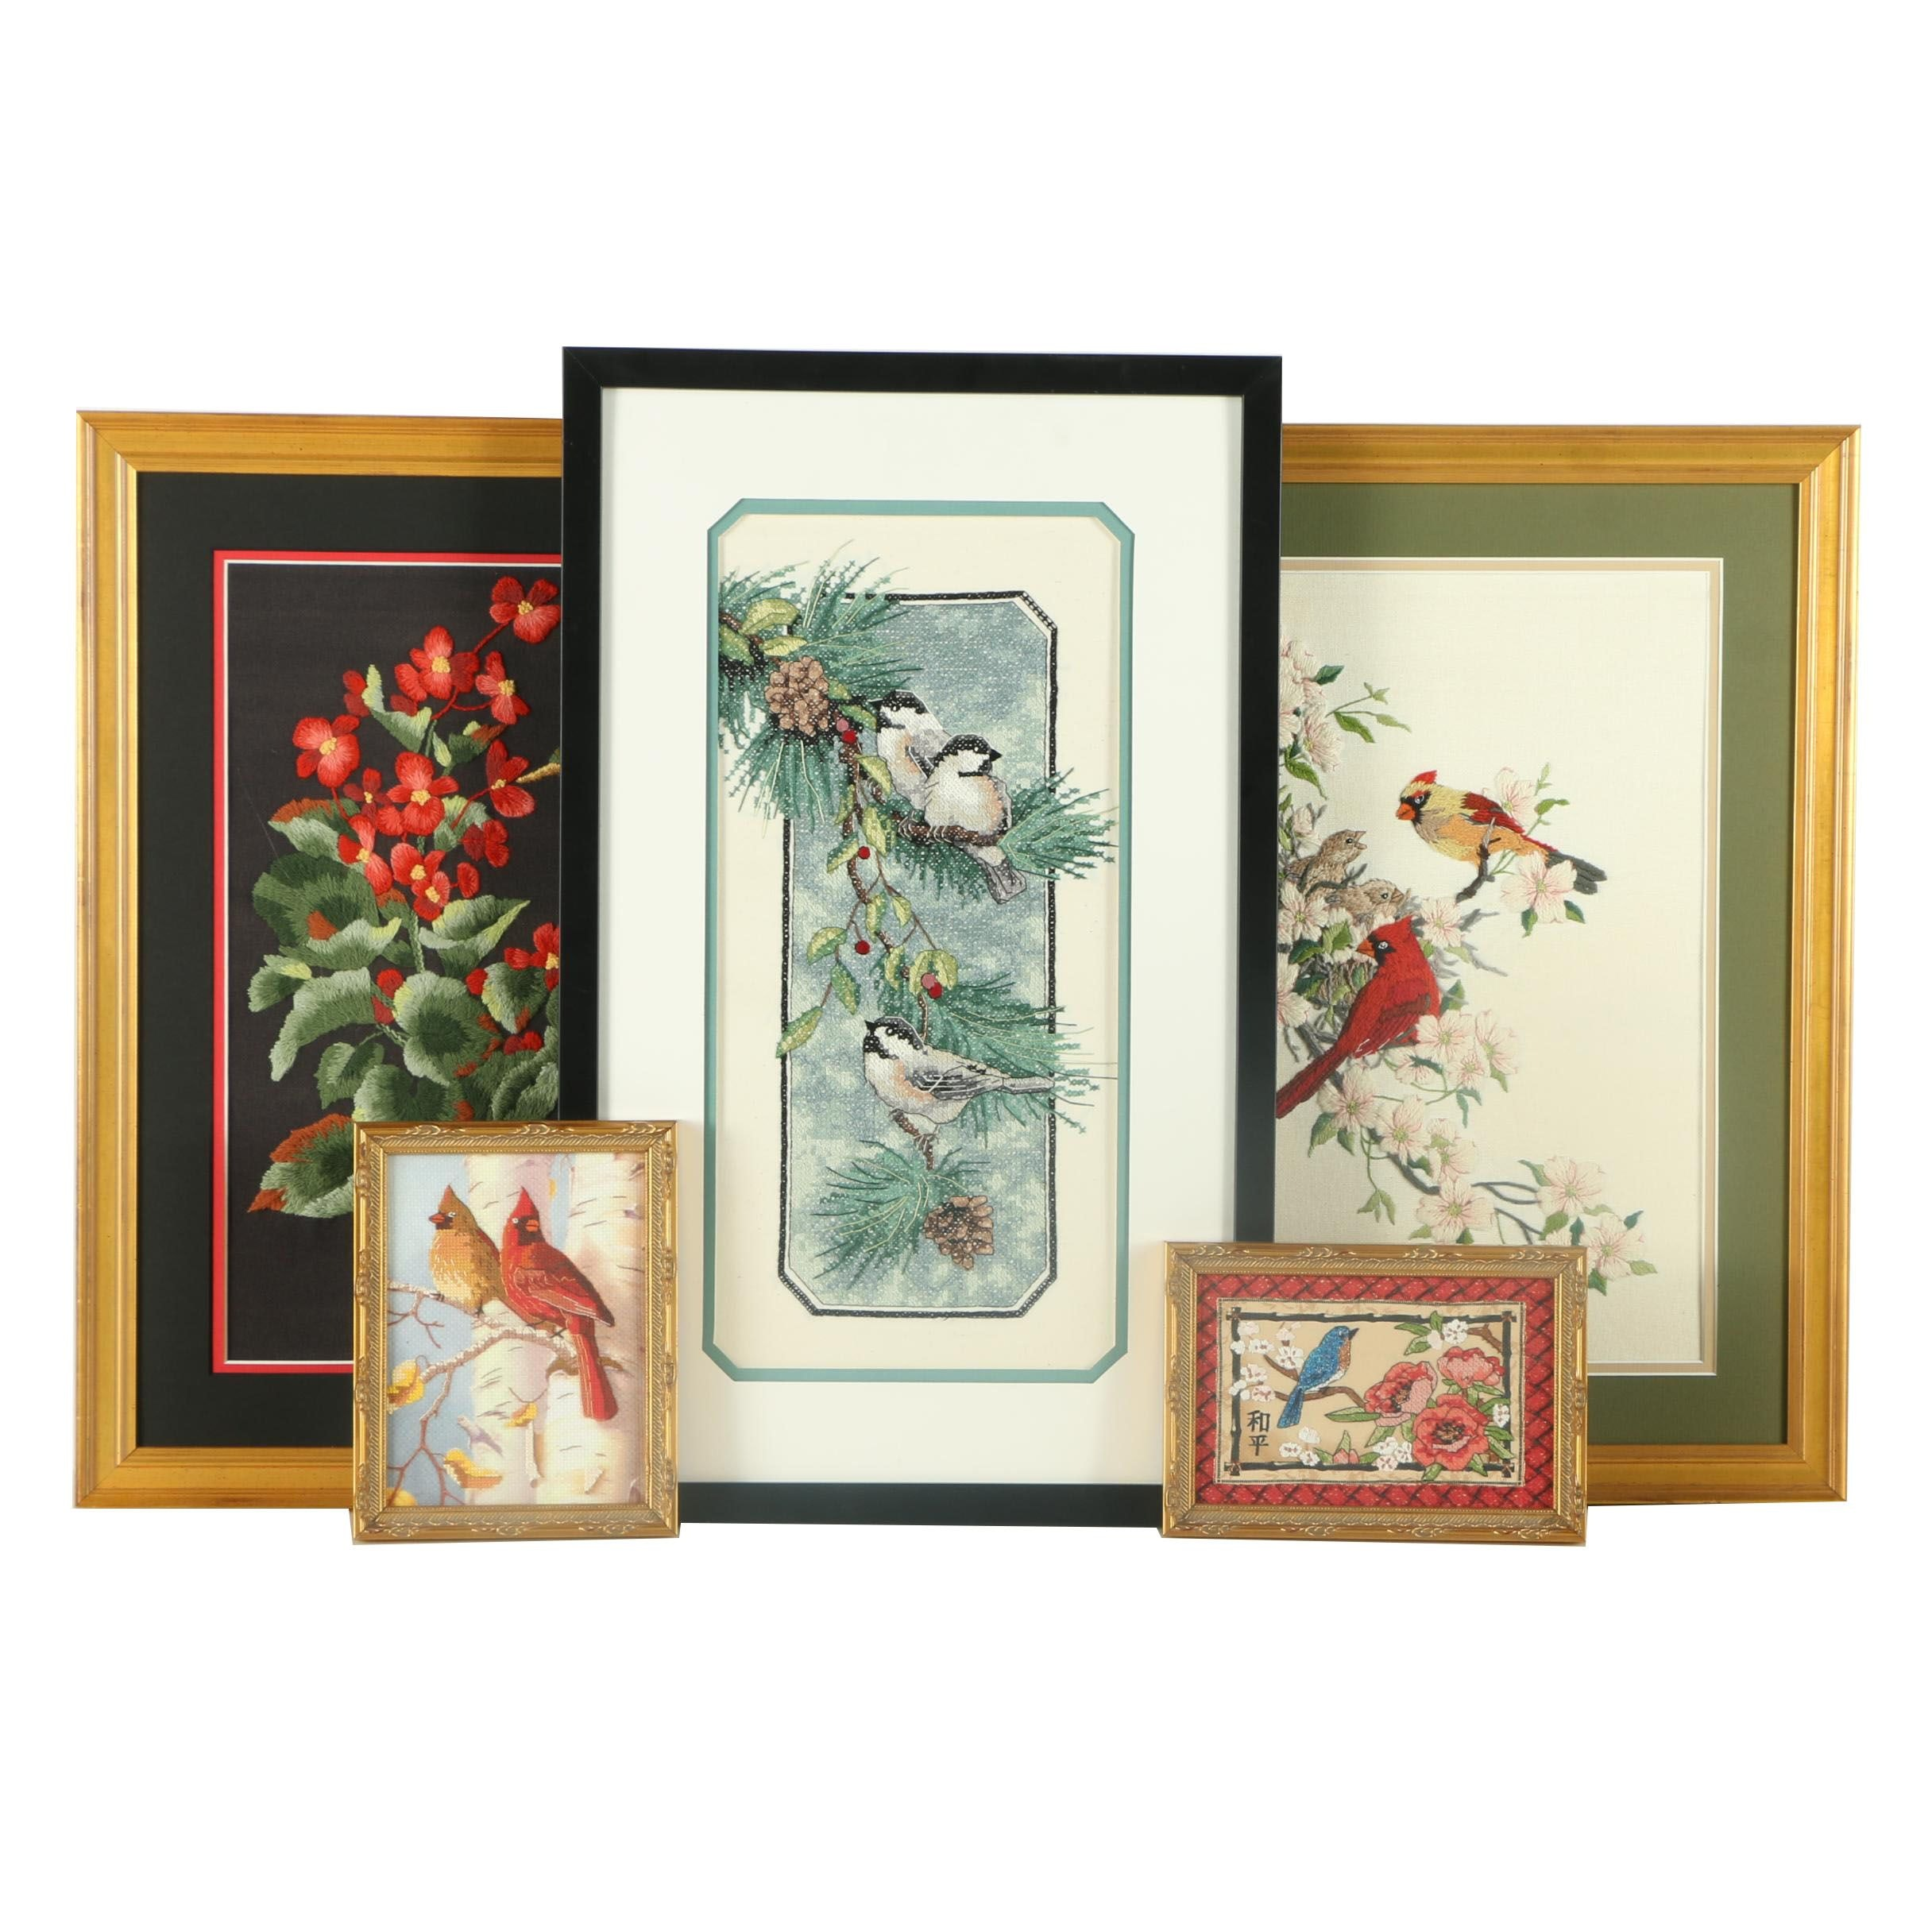 Collection of Framed Bird-Themed Needlepoint and Embroideries